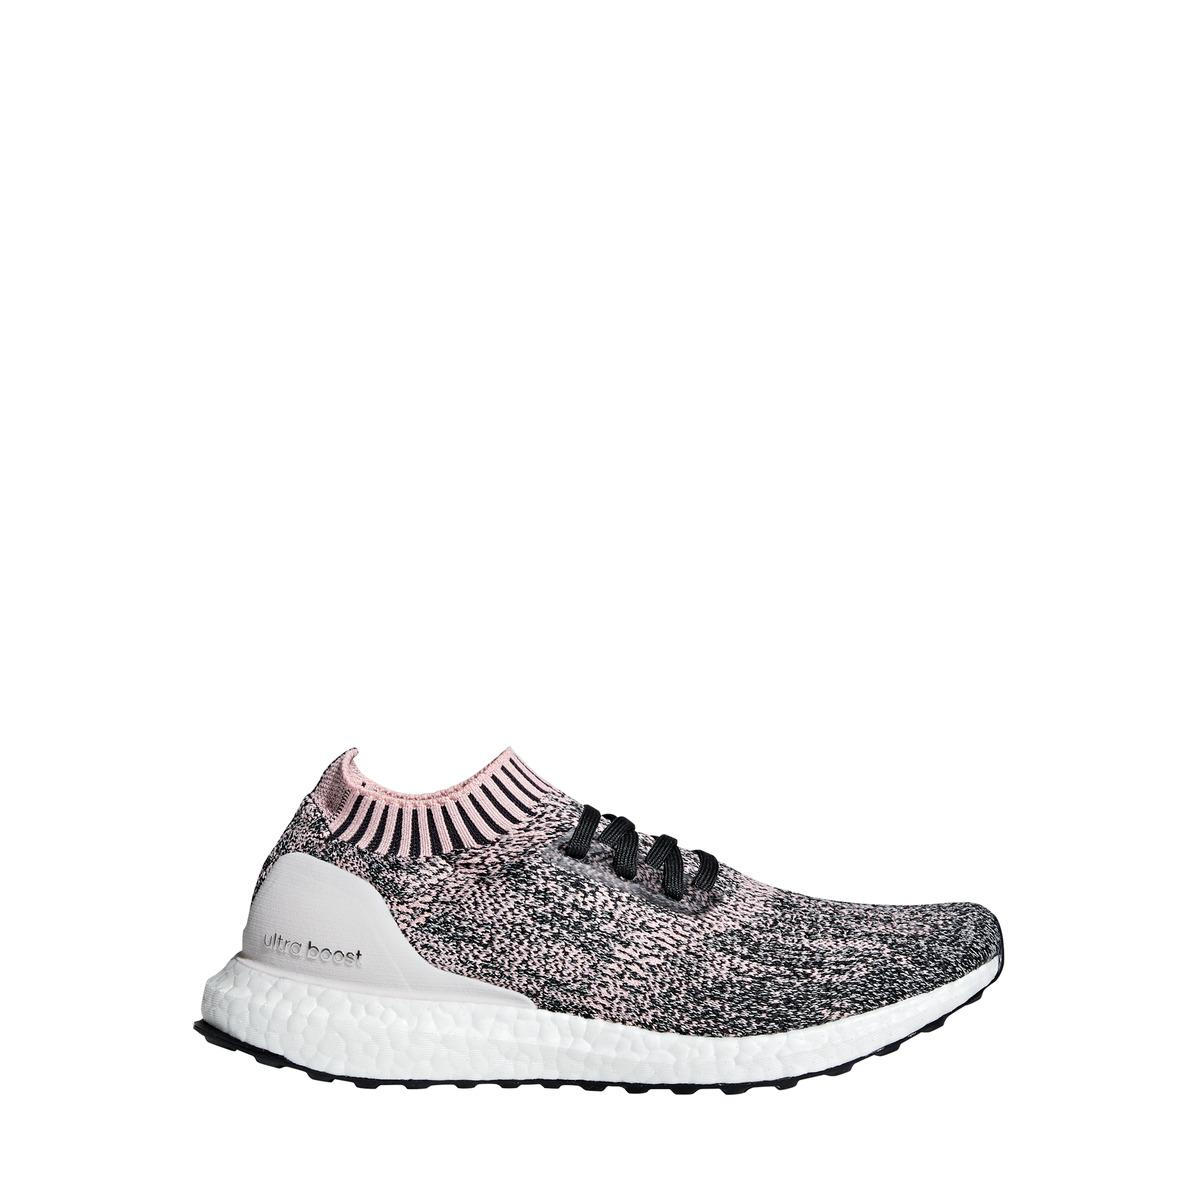 newest cef13 d299d Adidas - Gray Ultraboost Uncaged Casual Trainers - Lyst. View fullscreen